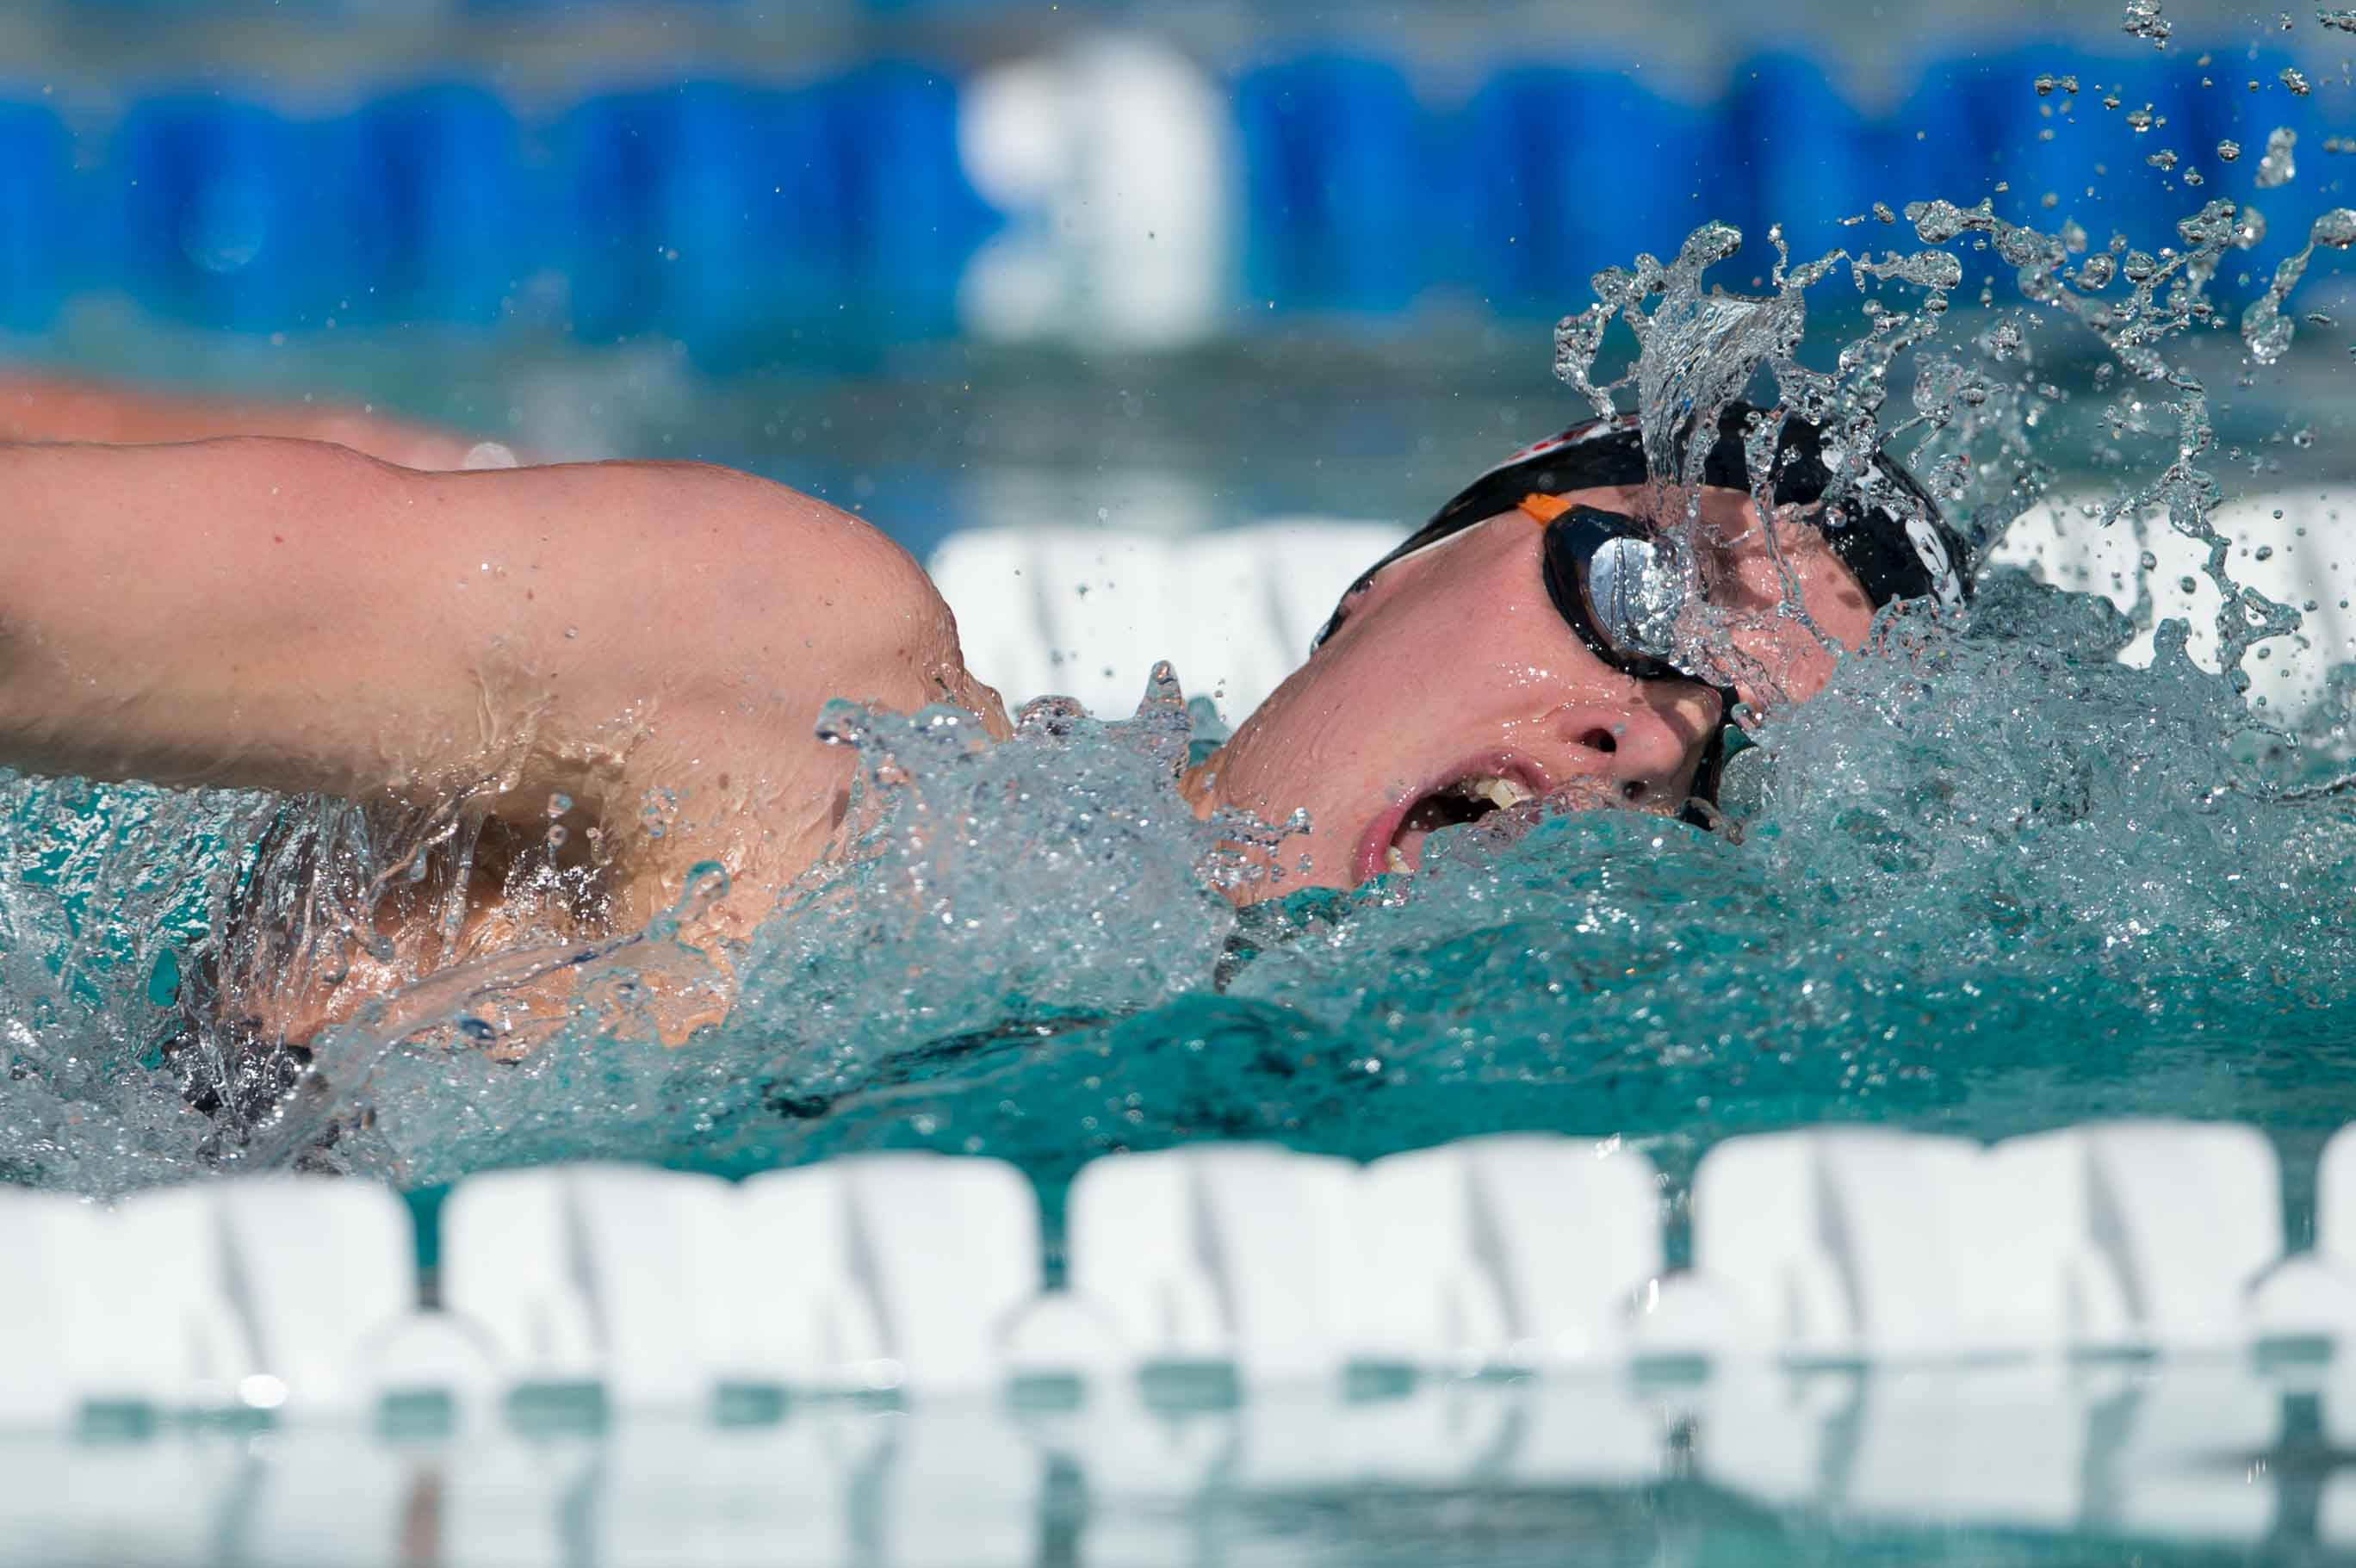 Without A Prelim Swim Heemskerk Top Seed For 200 Semi In Eindhoven